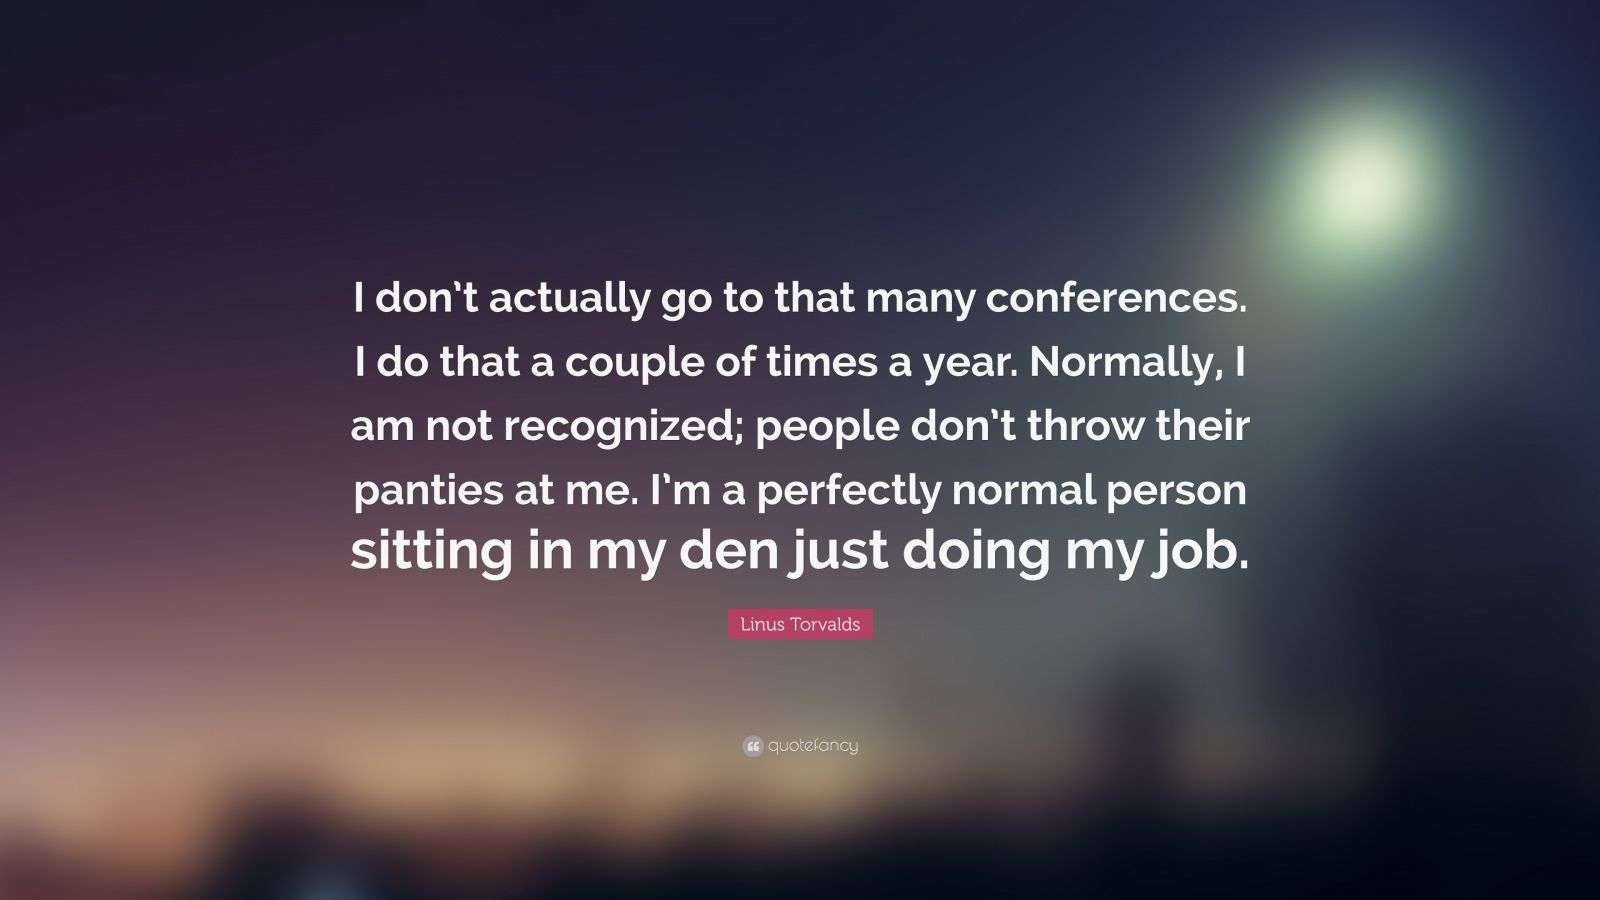 """Linus Torvalds Quote: """"I don't actually go to that many conferences. I do that a couple of times a year. Normally, I am not recognized; people don't throw their panties at me. I'm a perfectly normal person sitting in my den just doing my job."""""""